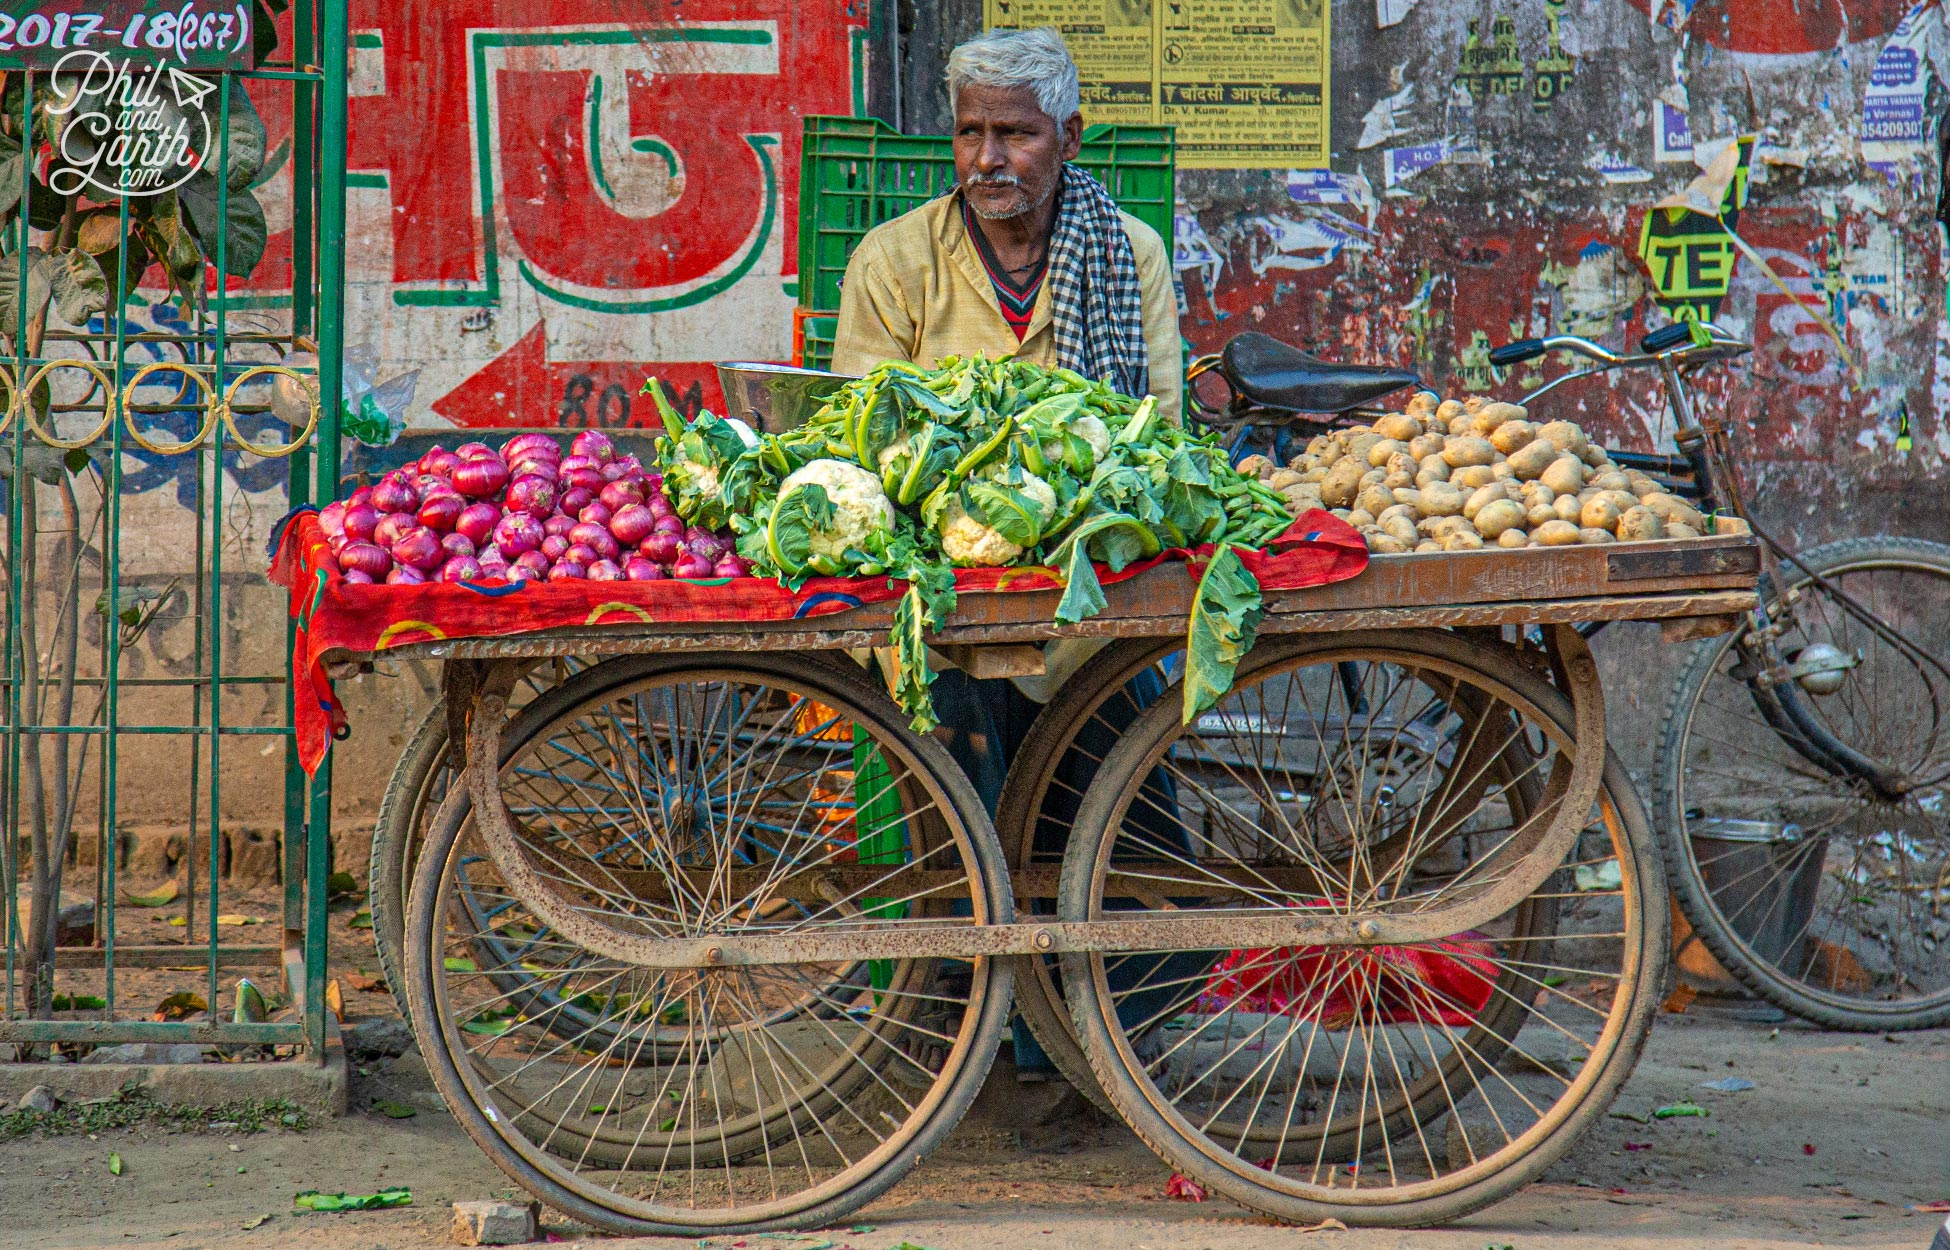 A guy selling onions, cauliflowers and potatoes